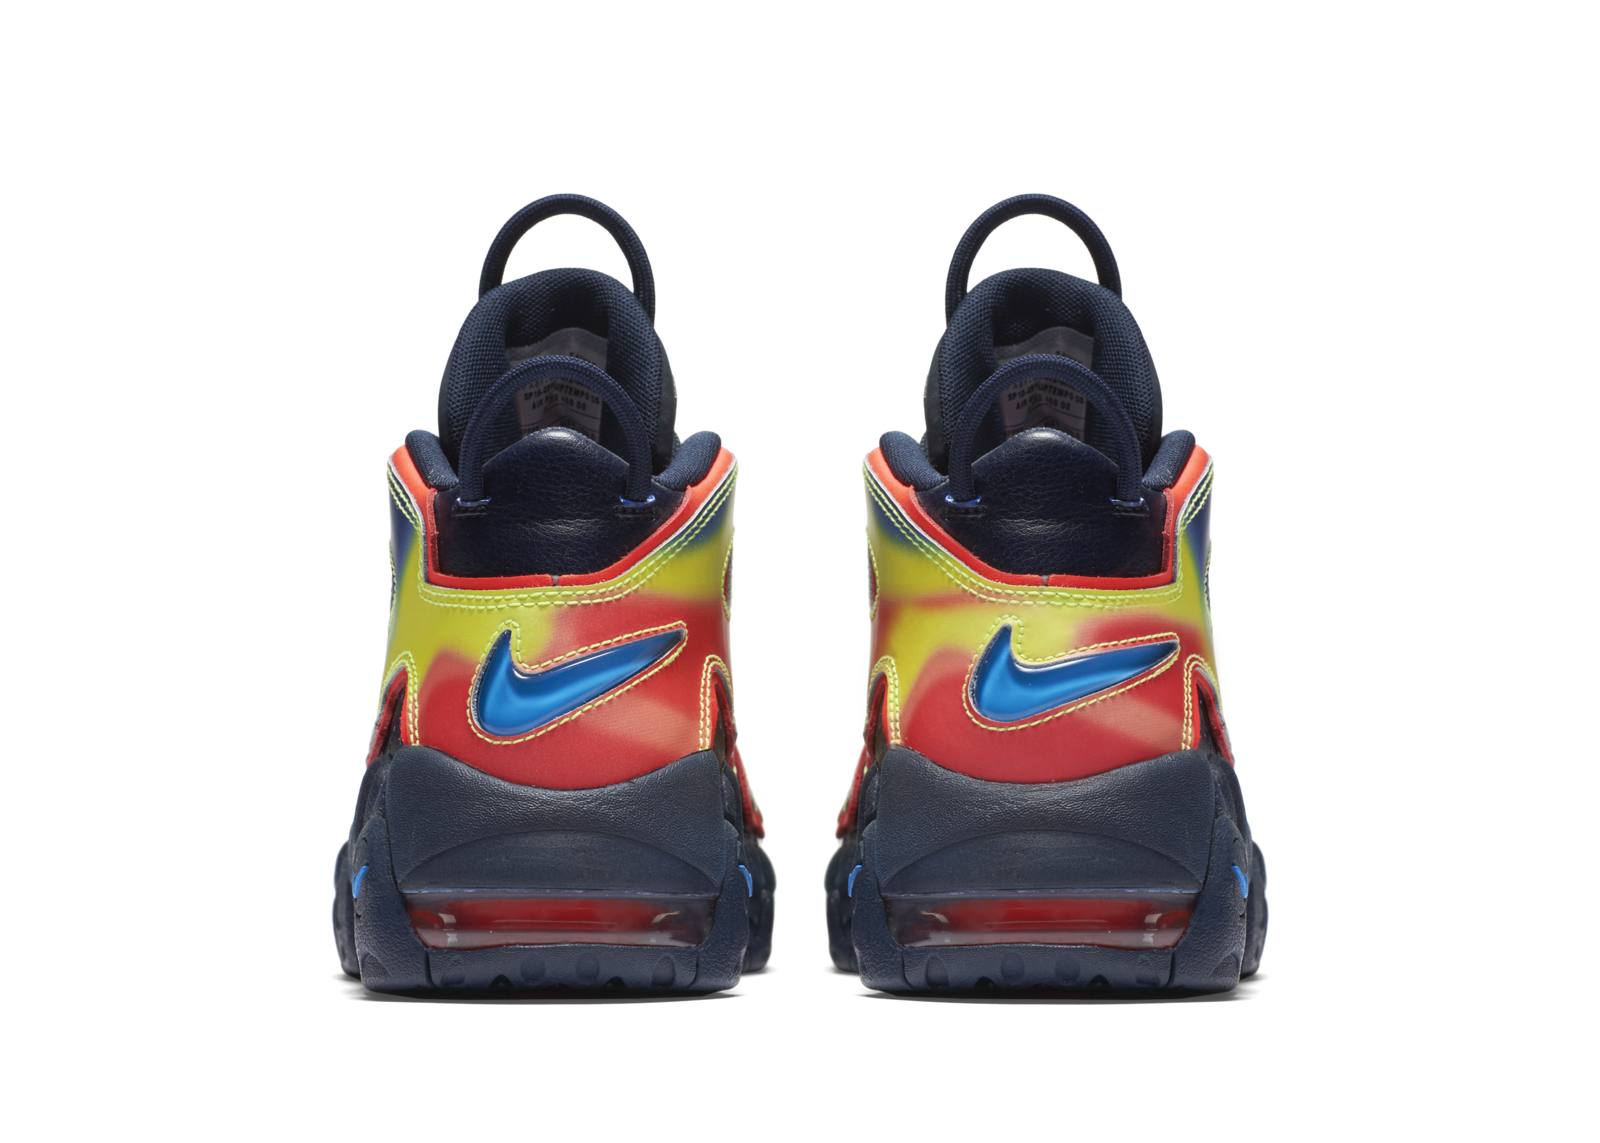 c3b6837f45 847652_400_F_PREM copy. 847655_400_D_PREM copy. The Heat Map Pack,  including the Air Max ...